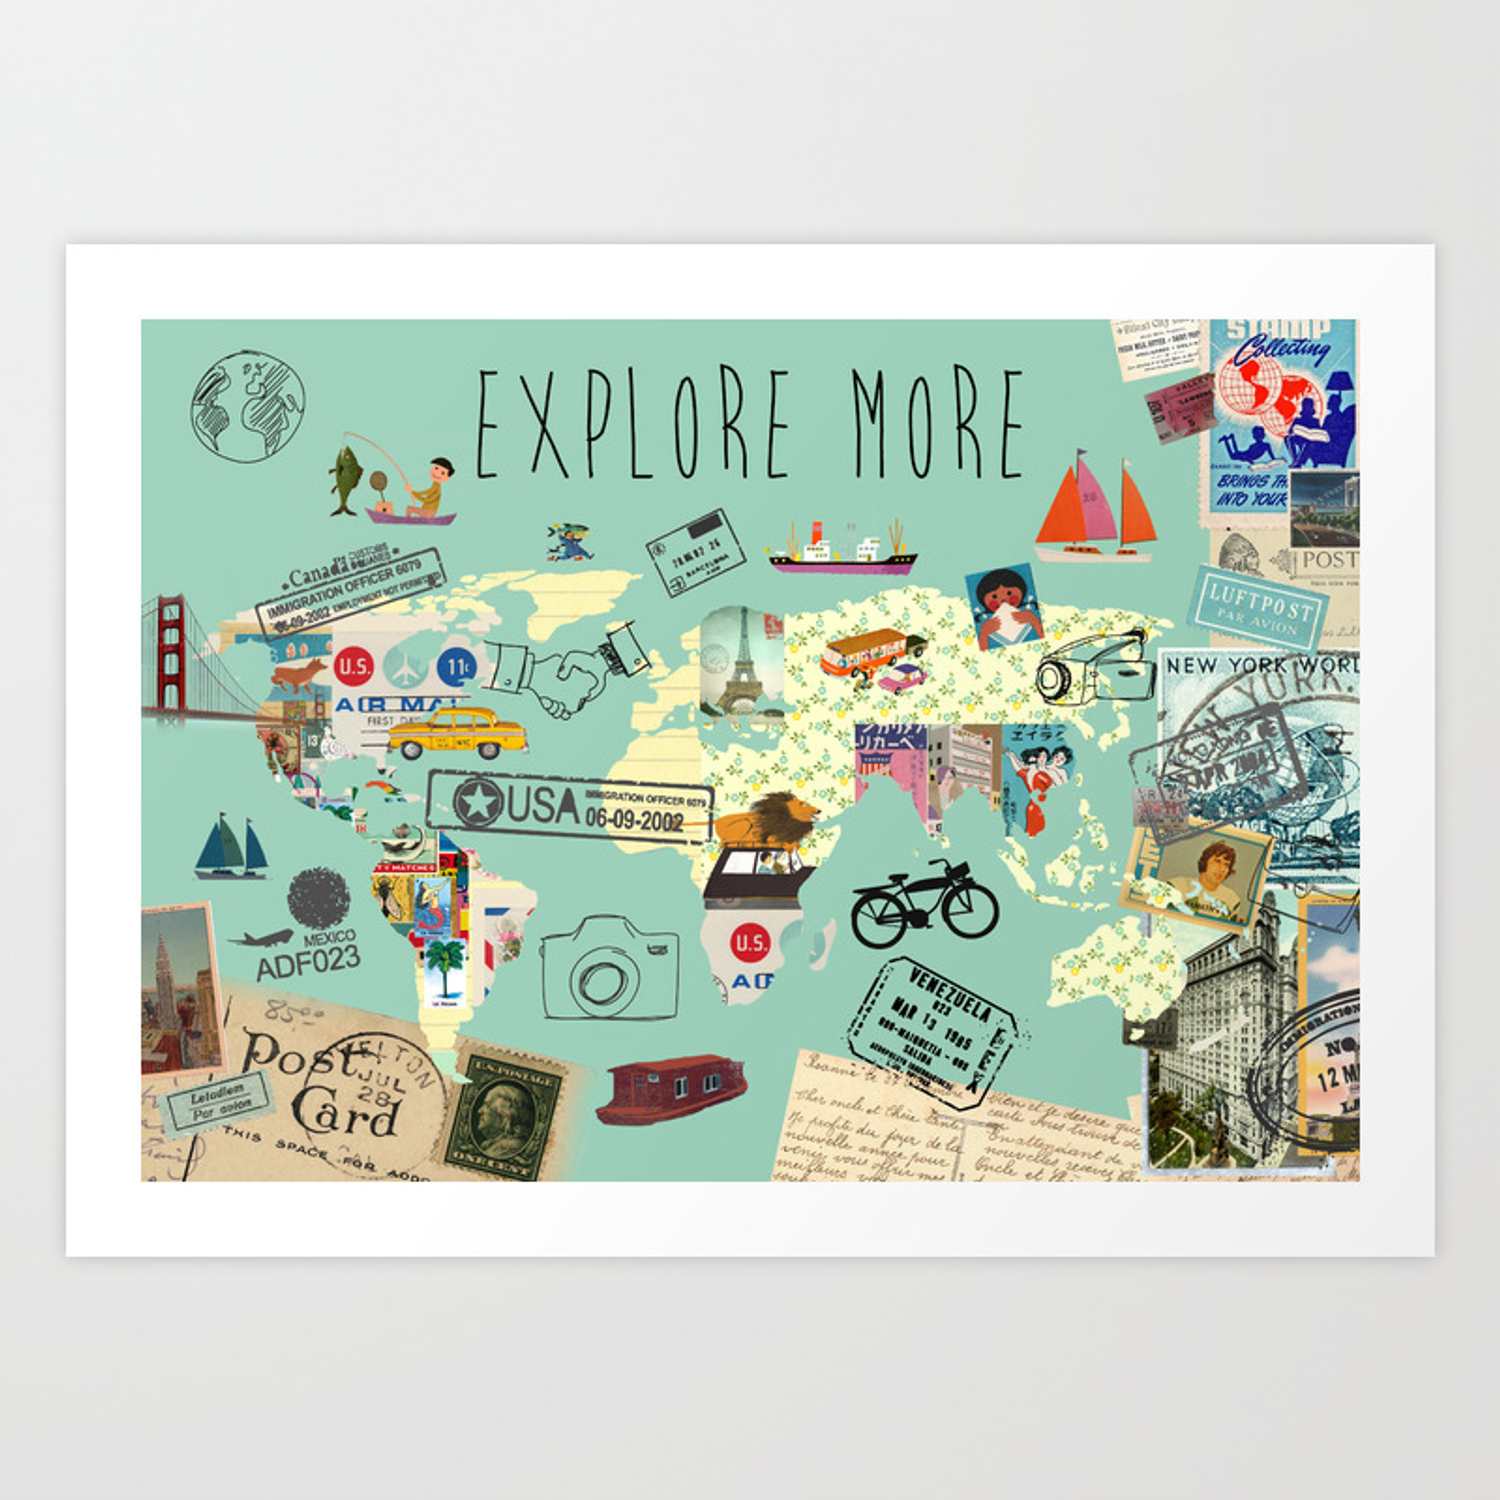 Explore More World Map Collage Art Print on map slide show, map travel, map facebook covers, map creator, map pencil, map in india, map gift tags, map in europe, map still life, map de france, map making, map of college football teams, map major rivers in australia, map with mountains, map with states, map distance between cities, map of dallas texas and surrounding areas, map vintage, map in spanish, map history,